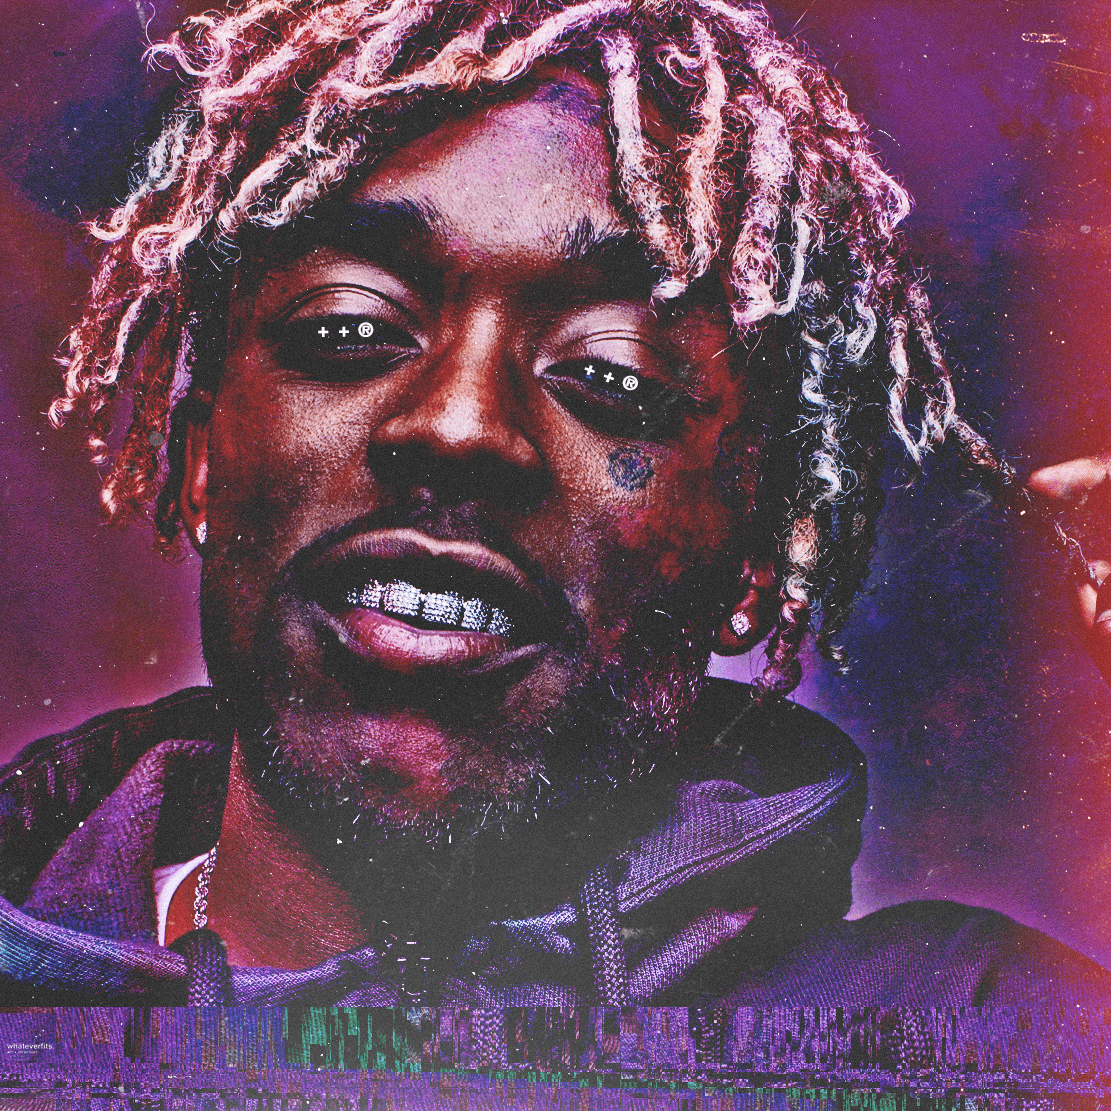 Lil Uzi Vert Wallpapers on bape cartoon wallpapers 1080x1080